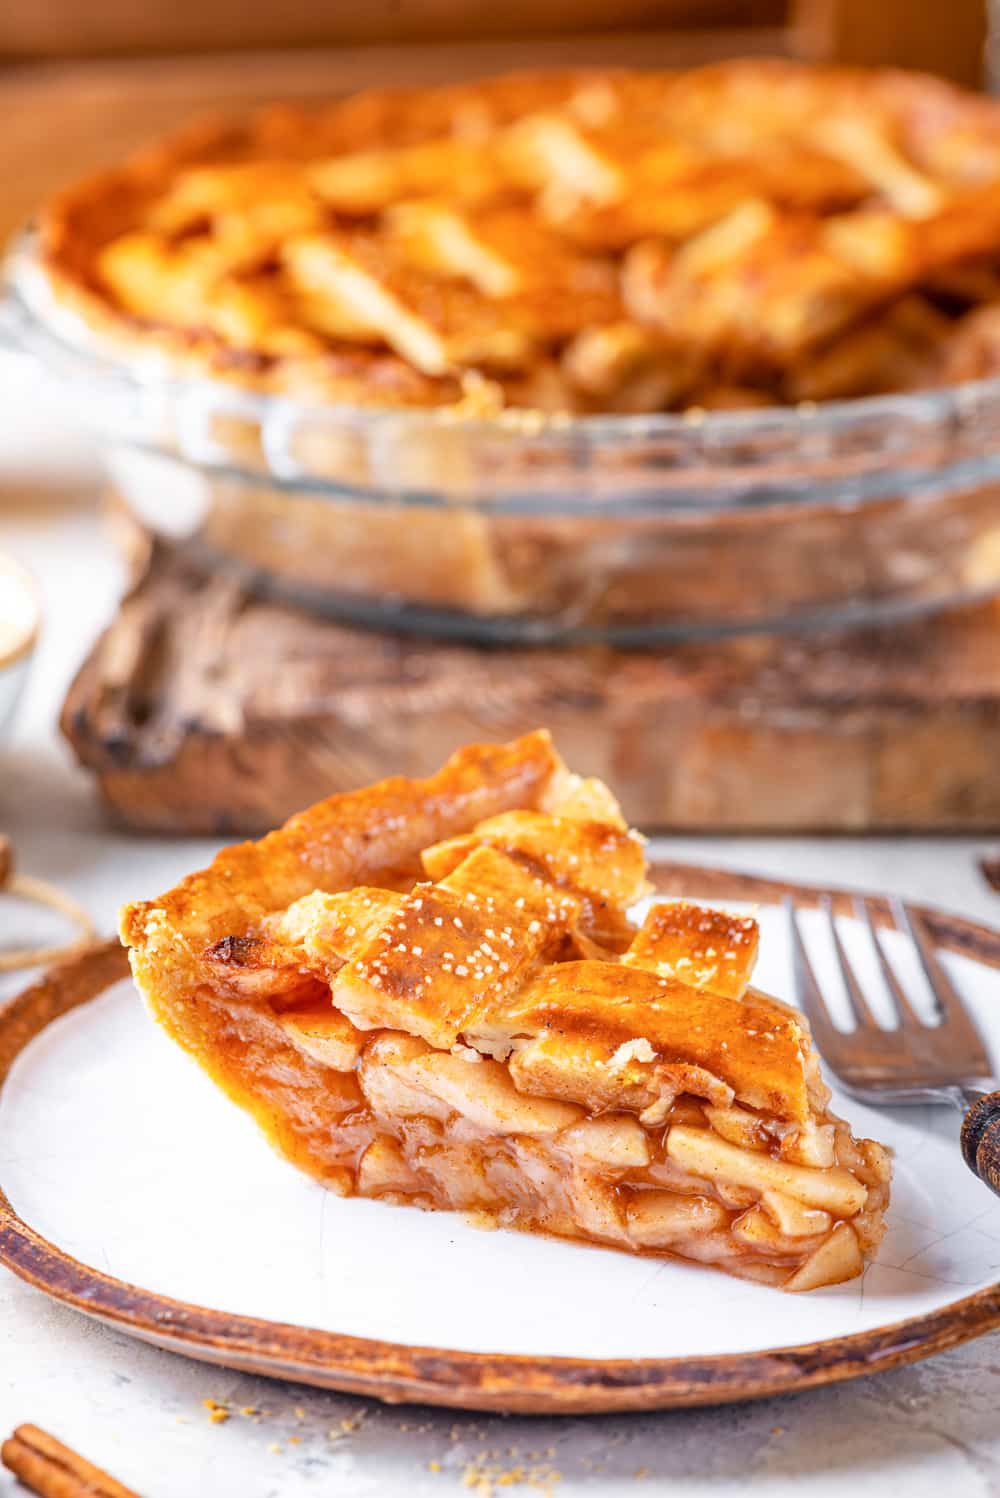 A side view of a piece fo apple pie on a white plate. A fork is to the right of the piece of pie. The entire vegan apple pie minus the one piece is behind the plate. The vegan apple pie is in a glass pie plate on top of a wooden cutting board. Everything is on a grey counter.